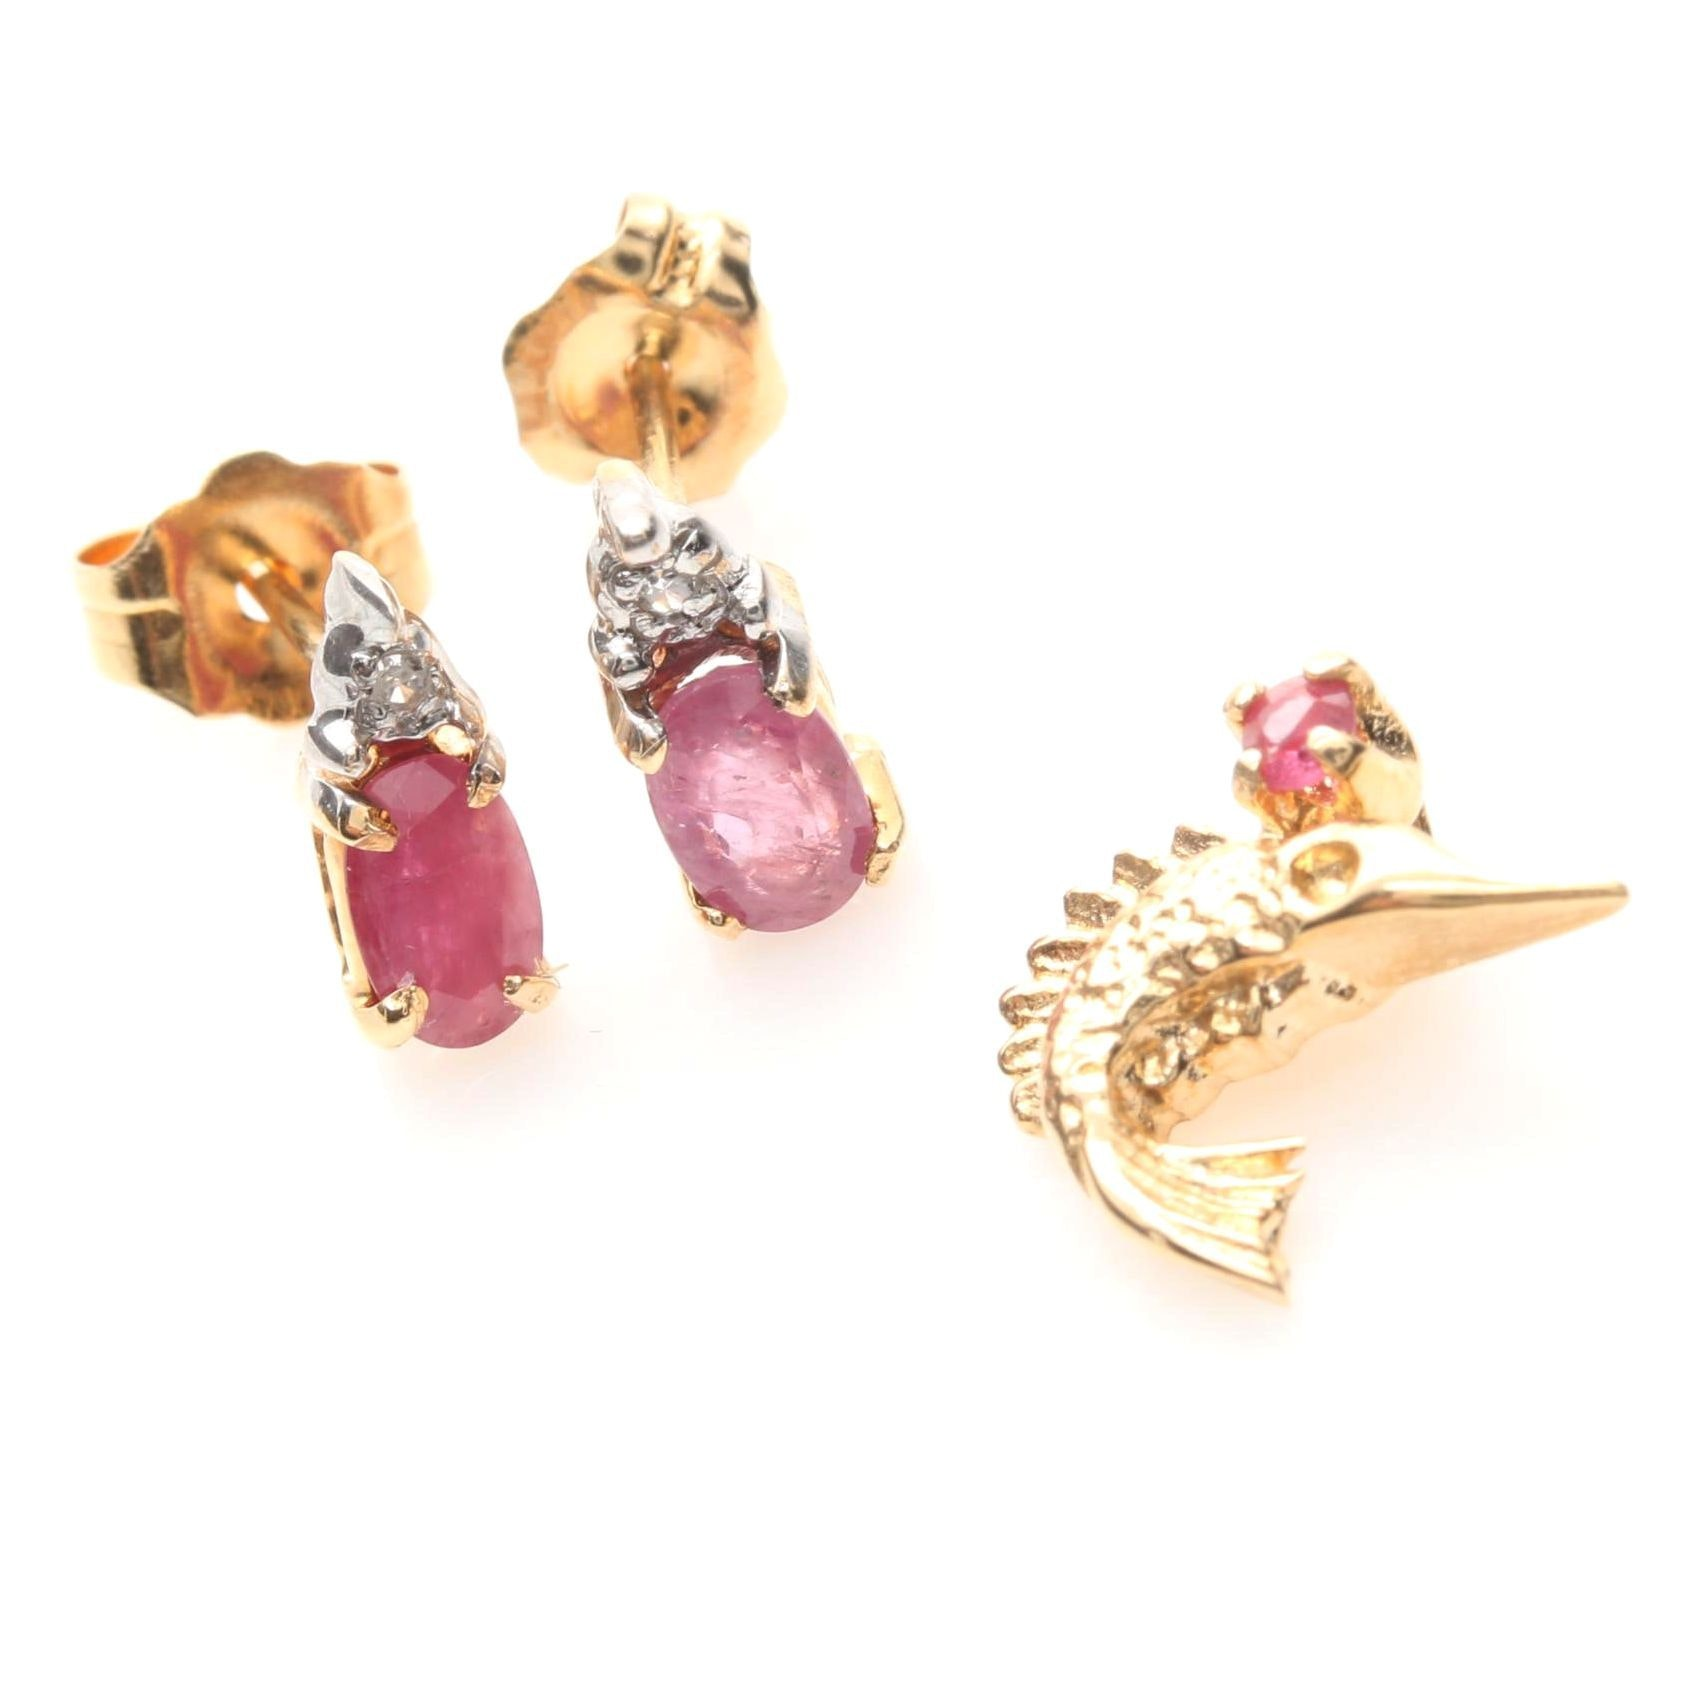 14K Yellow Gold Ruby Pendant and Earrings Including Diamonds